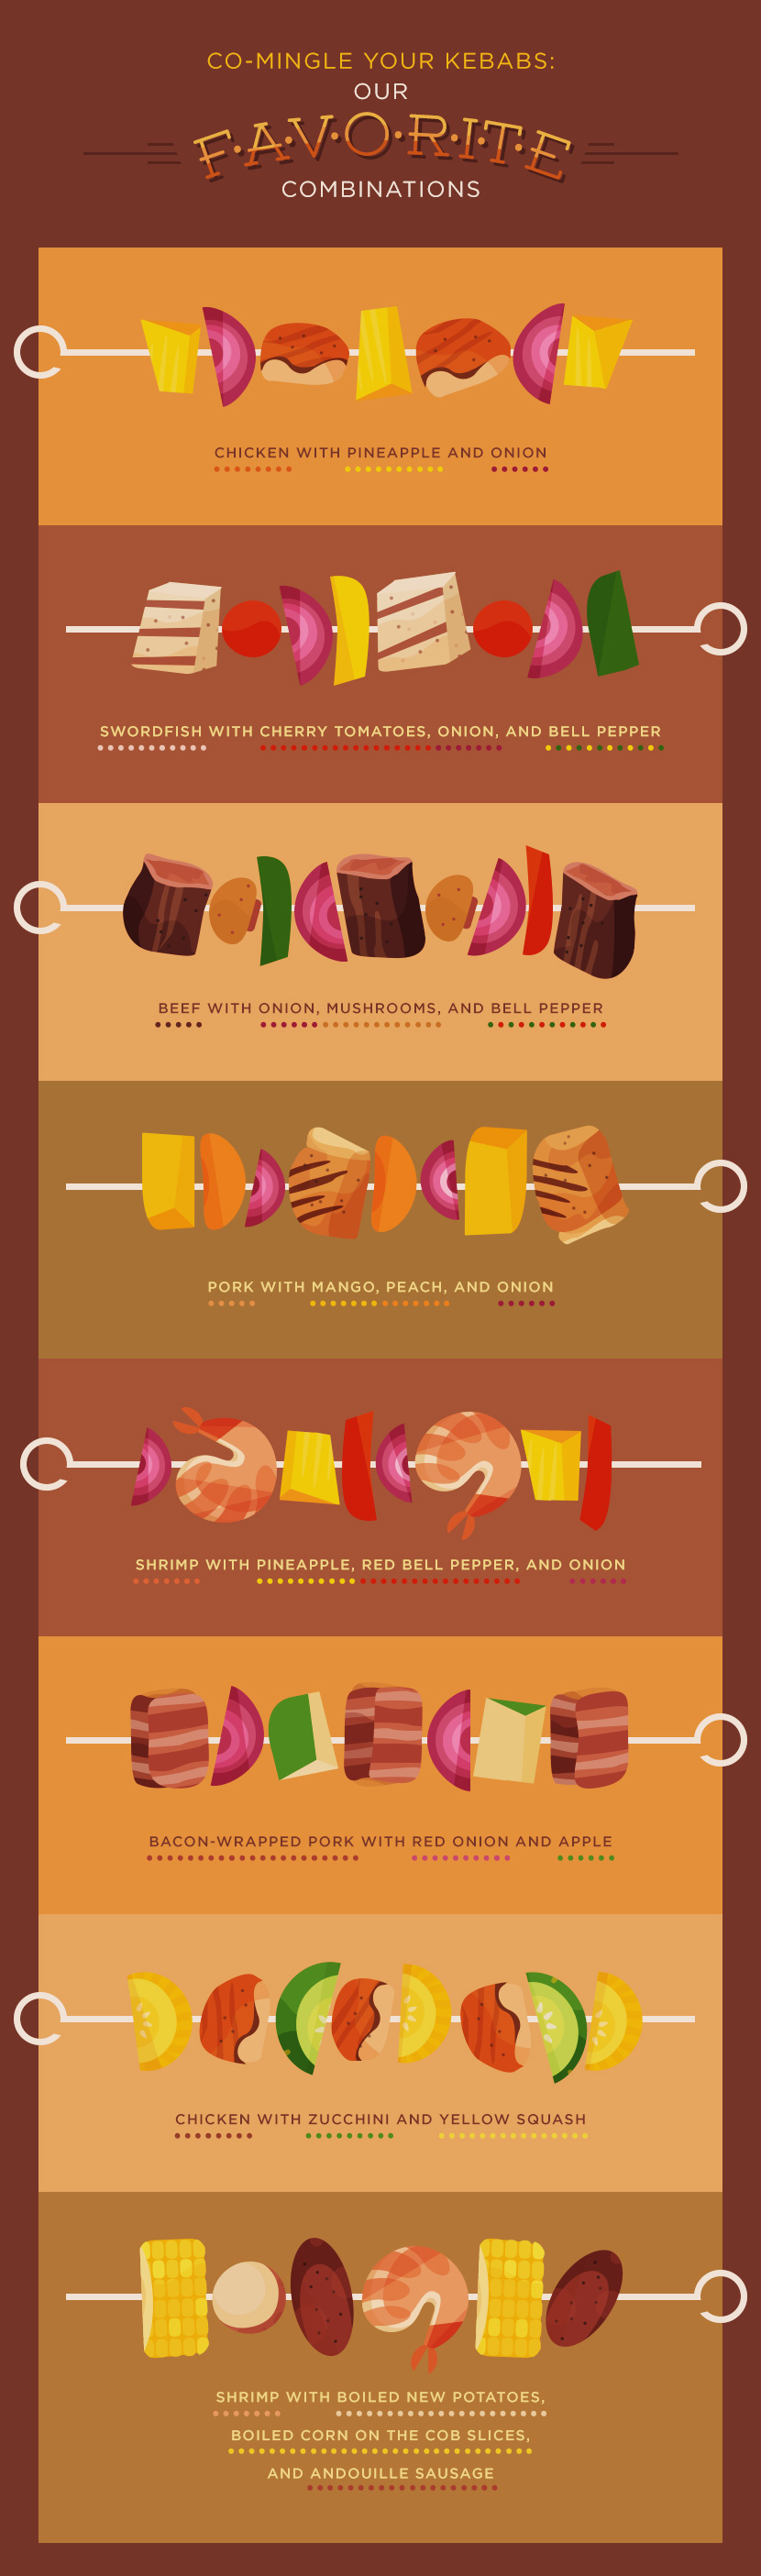 the best recipe combinations for shish kebabs